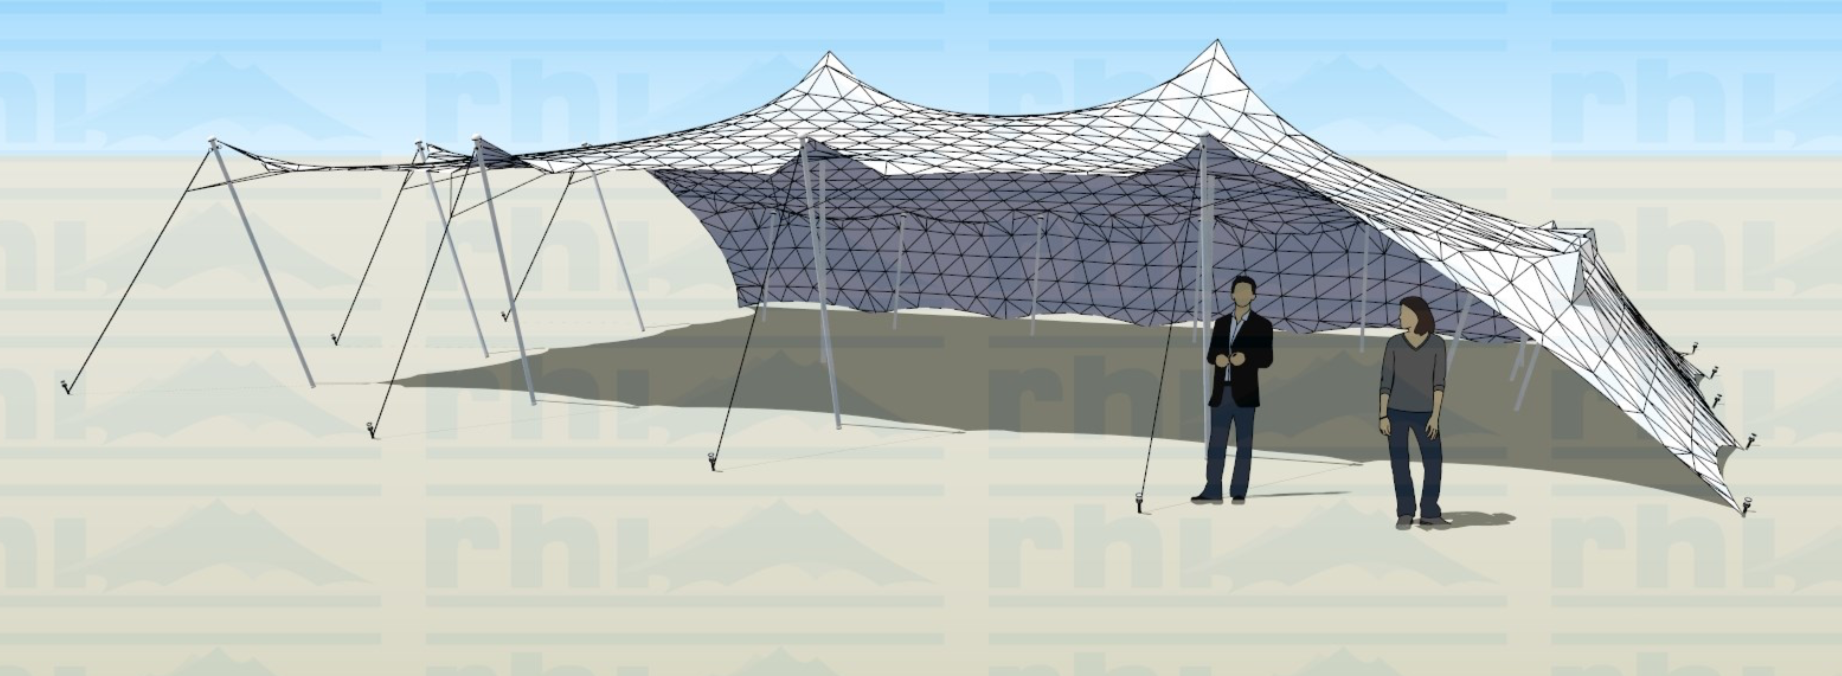 10x15 Stretch Tent - 2 sides down at All The Kit